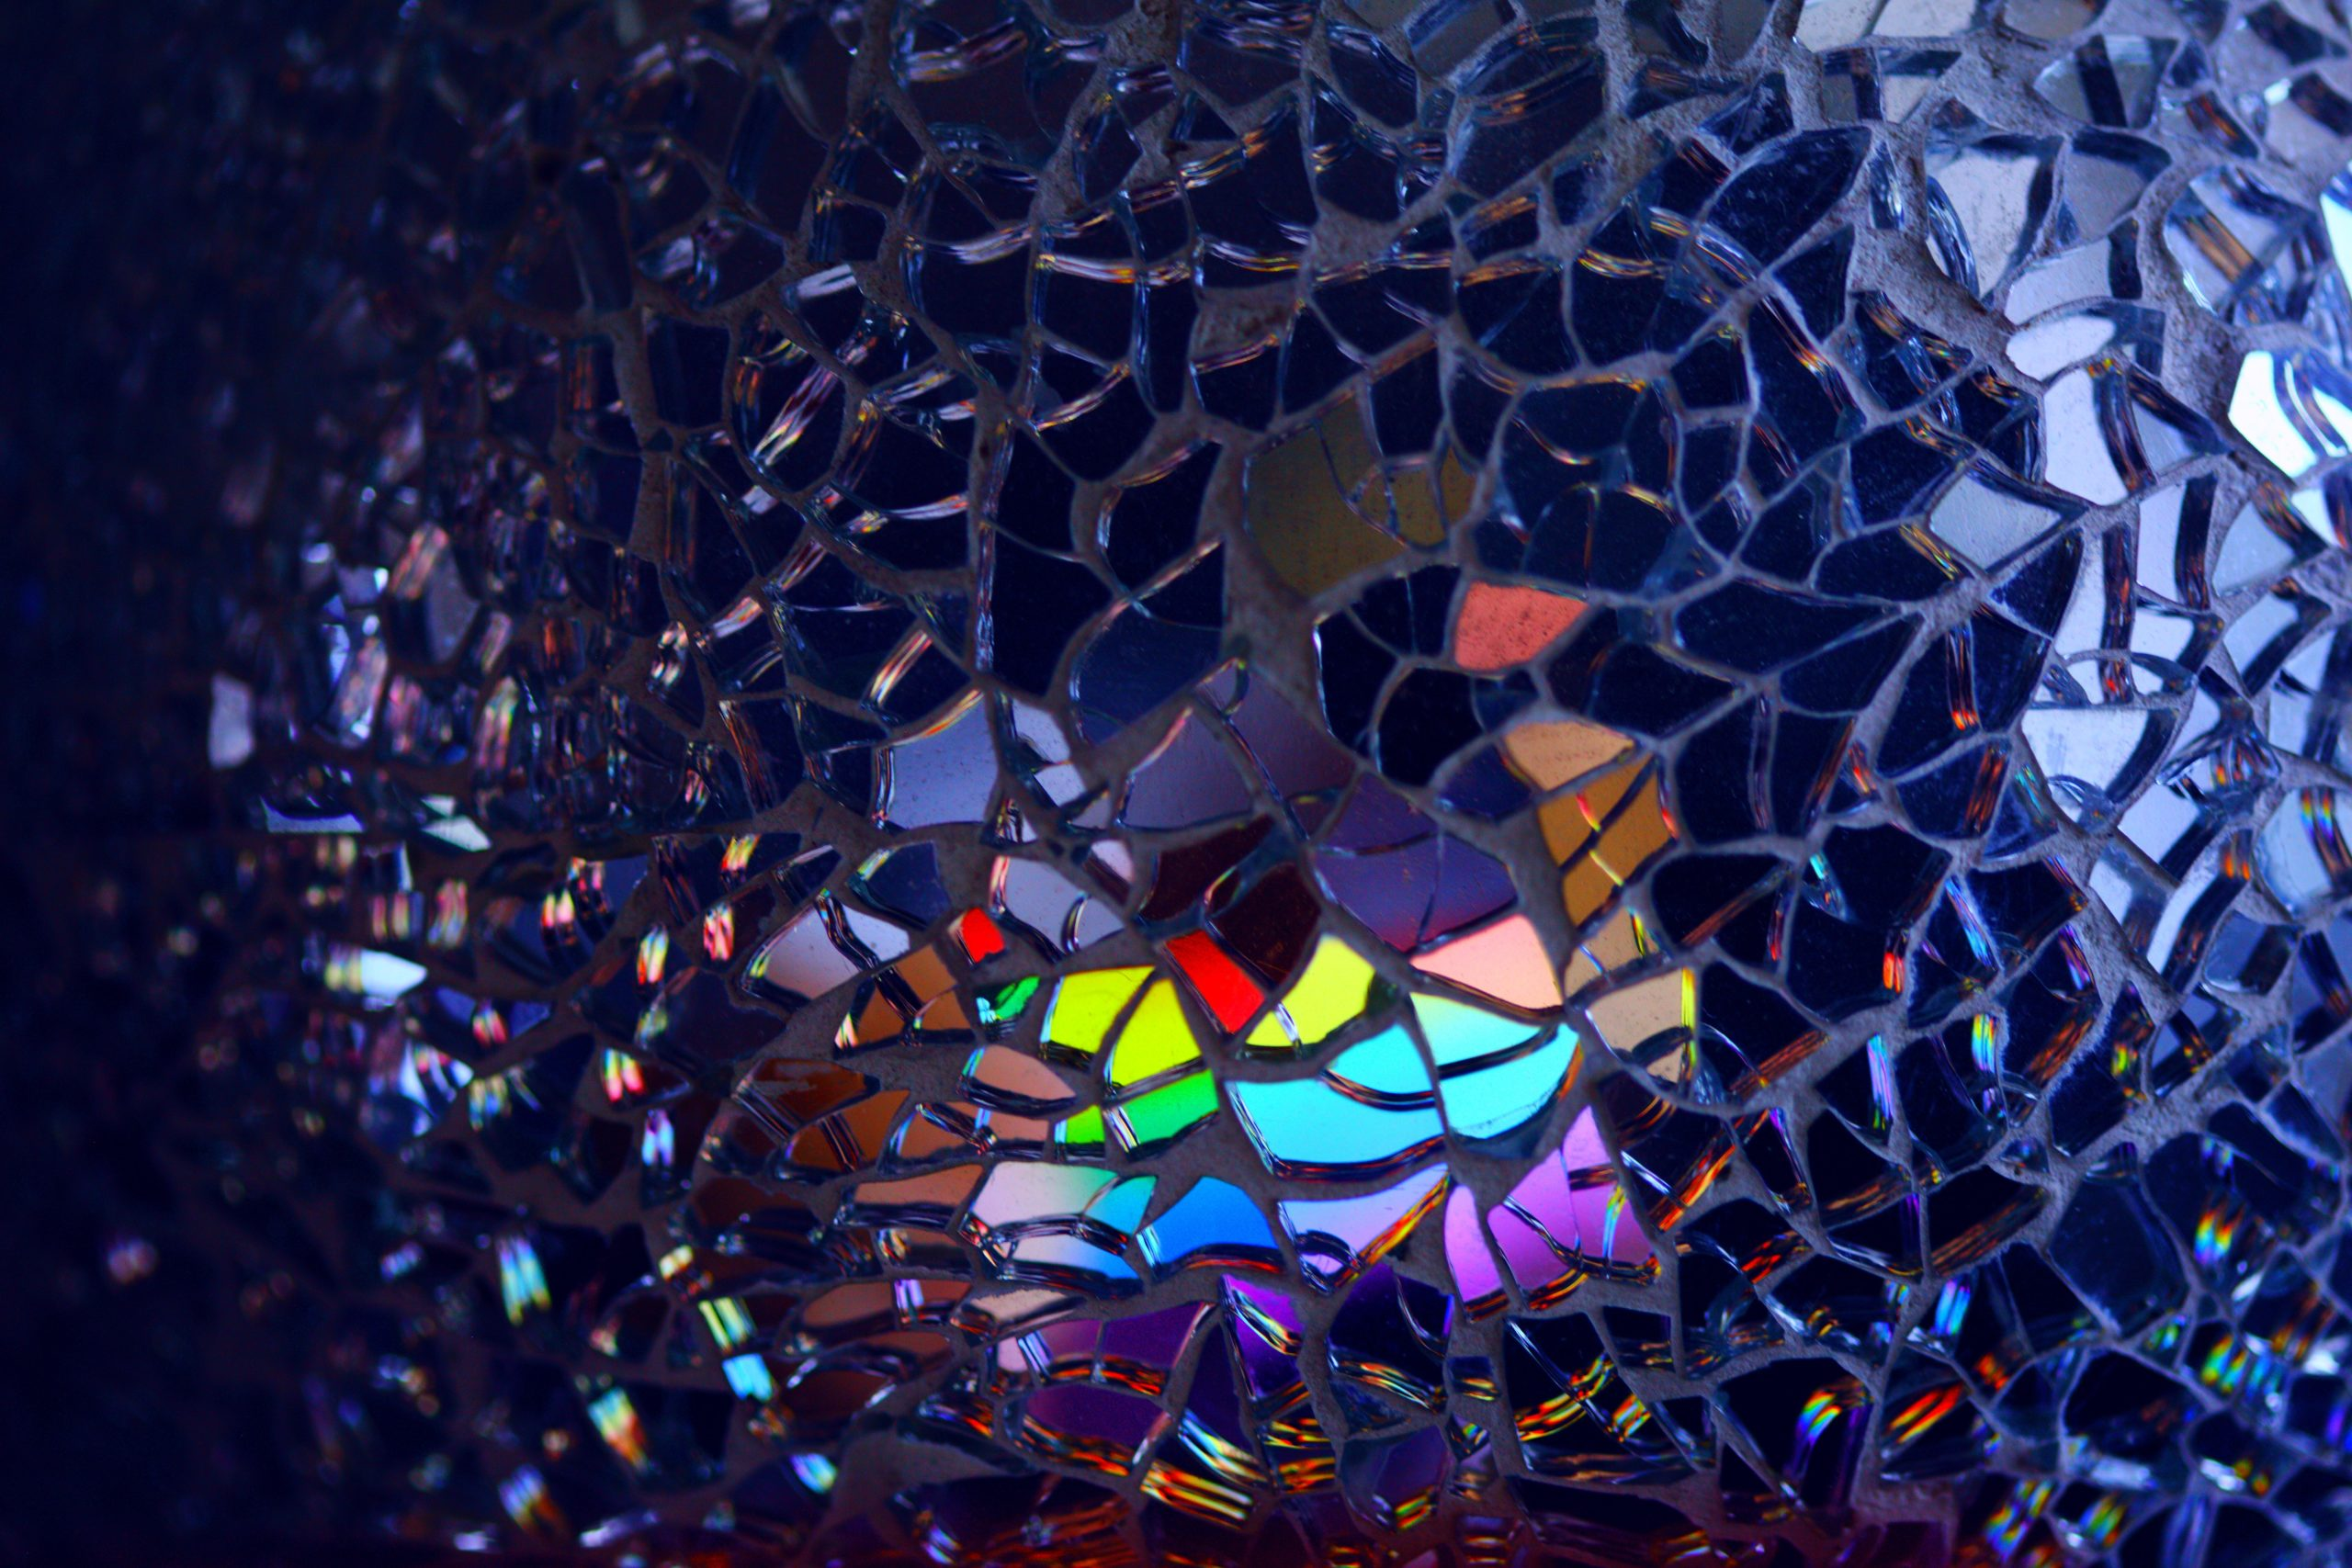 Closeup on a glass mosaic that looks all blue from one angle but reflects rainbow colors at another angle.